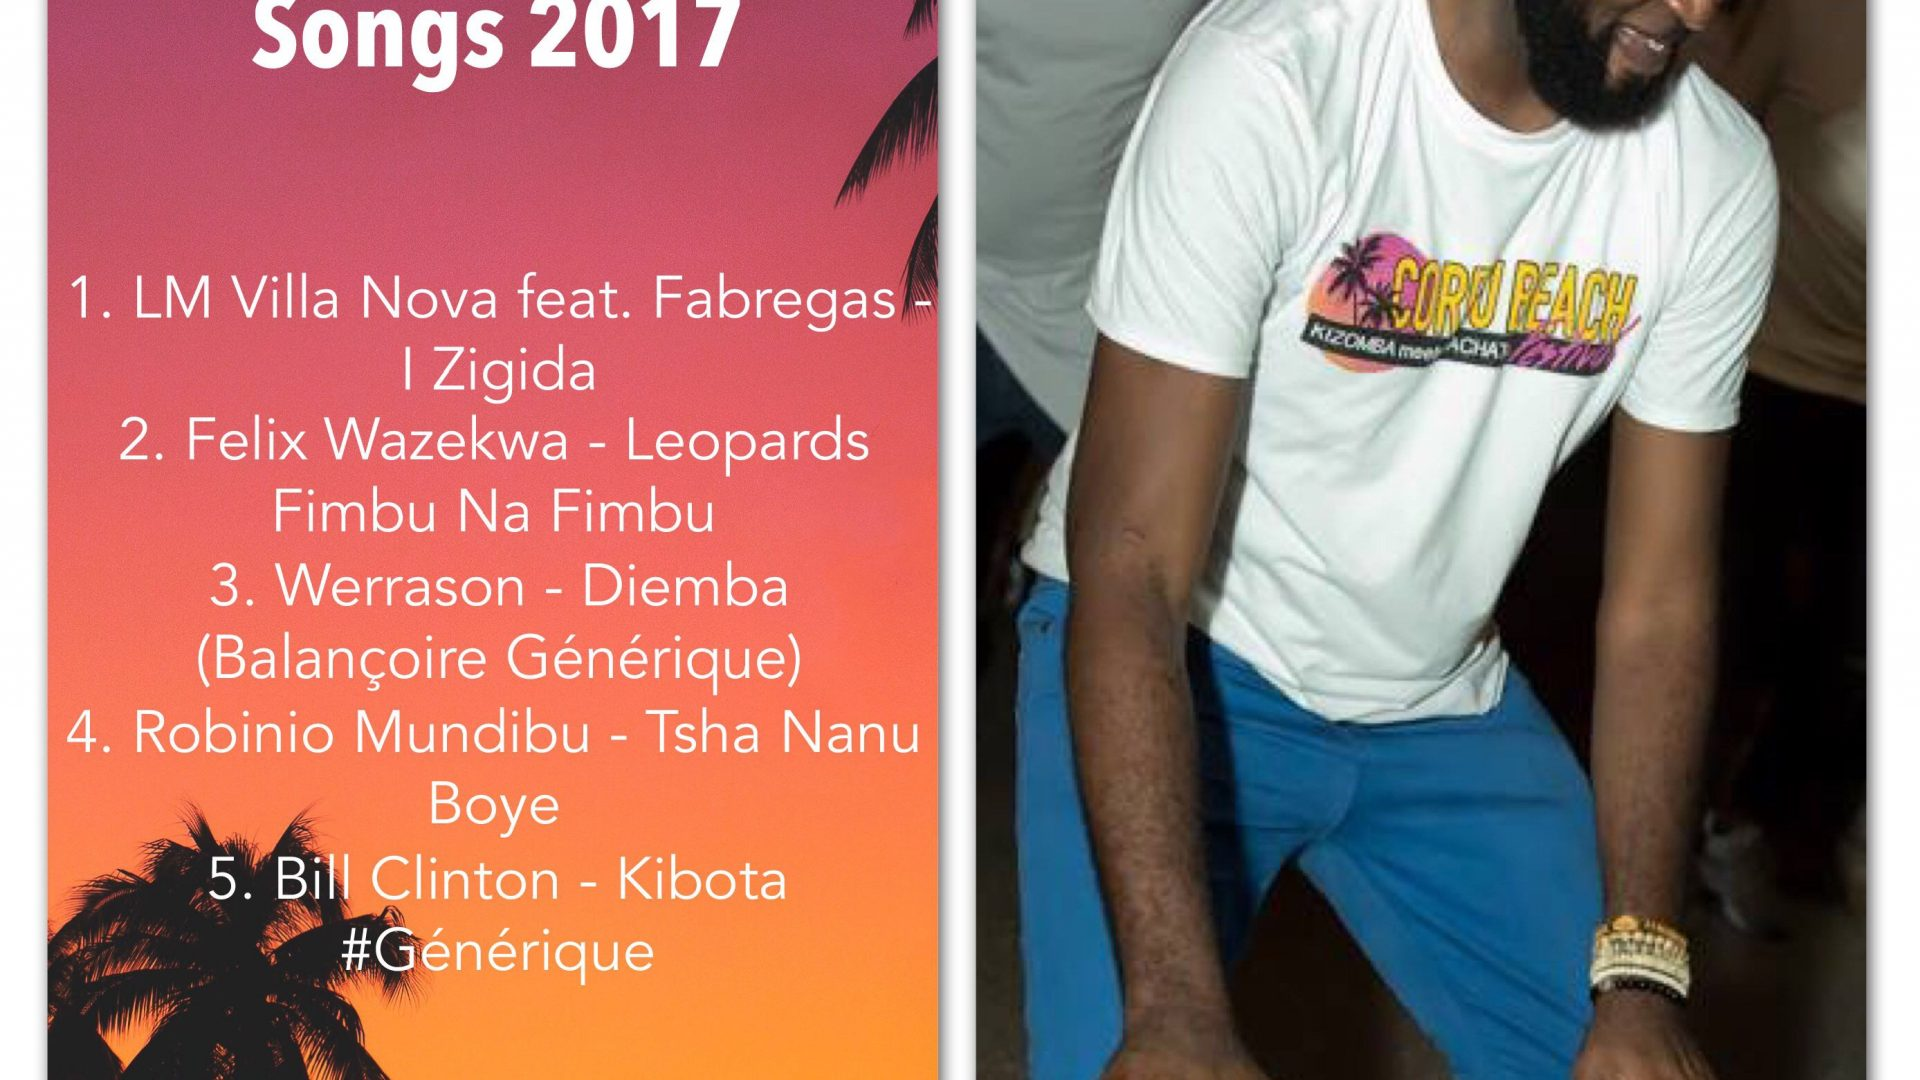 Blaise Mwami – Top 5 Congolese Songs of 2017